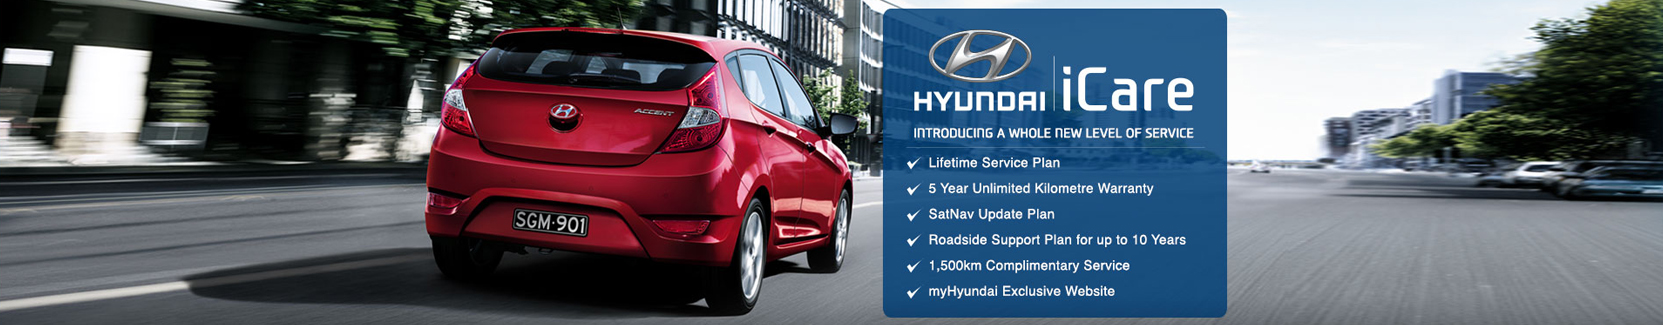 iCare from Hyundai, a new level of vehicle servicing available at Metro Hyundai Brisbane.